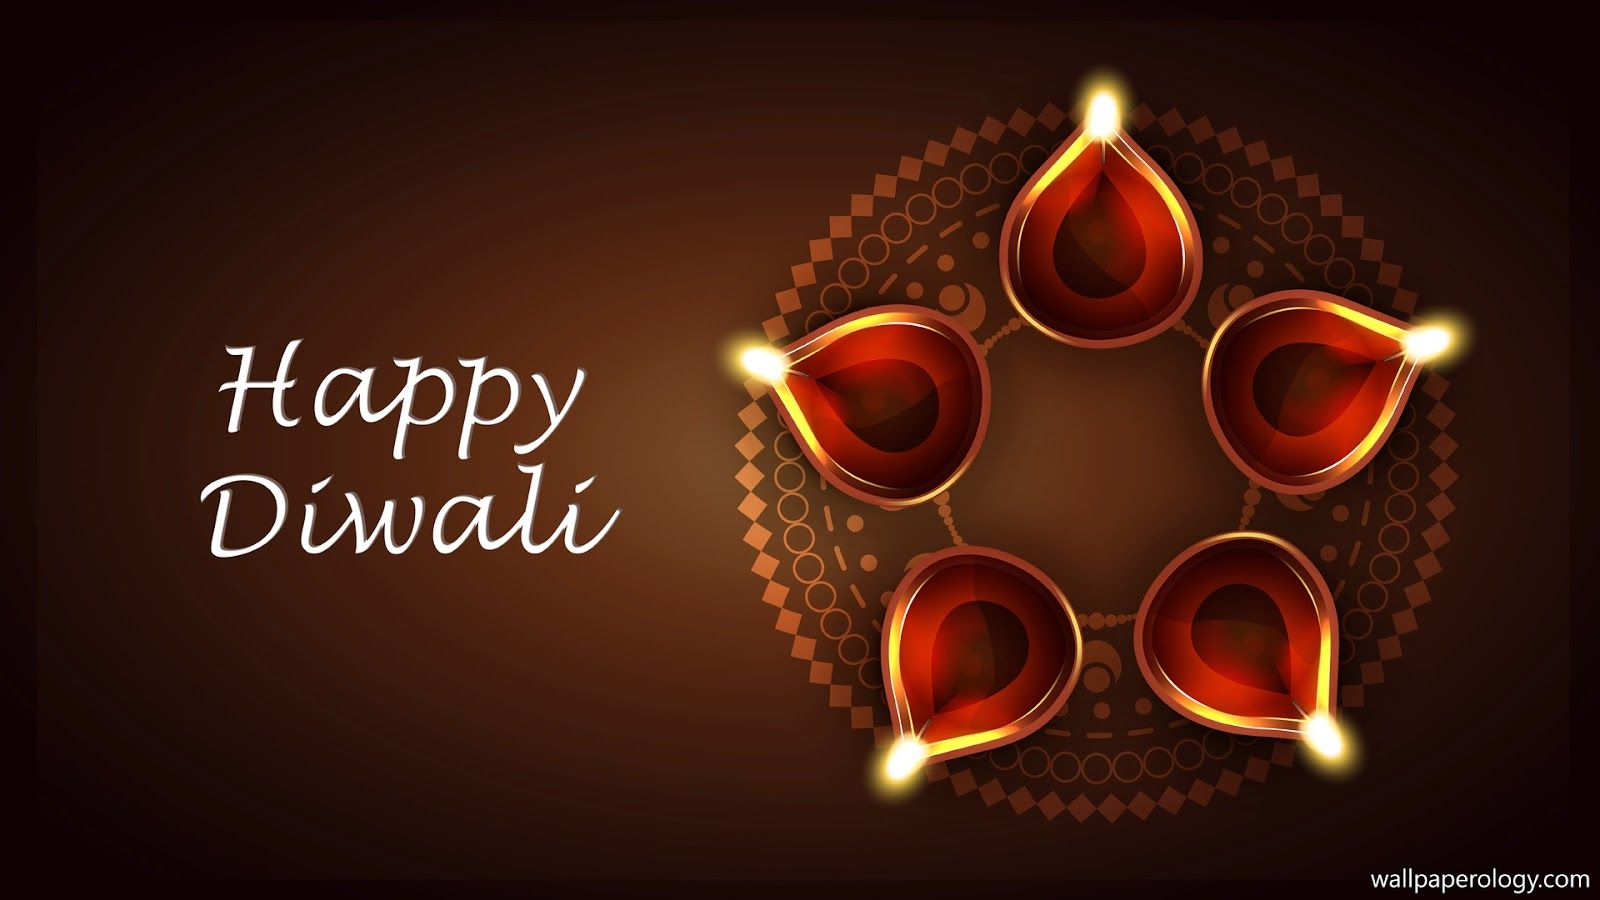 16 hd happy diwali wallpapers download free and share httpwww 16 hd happy diwali wallpapers download free and share http m4hsunfo